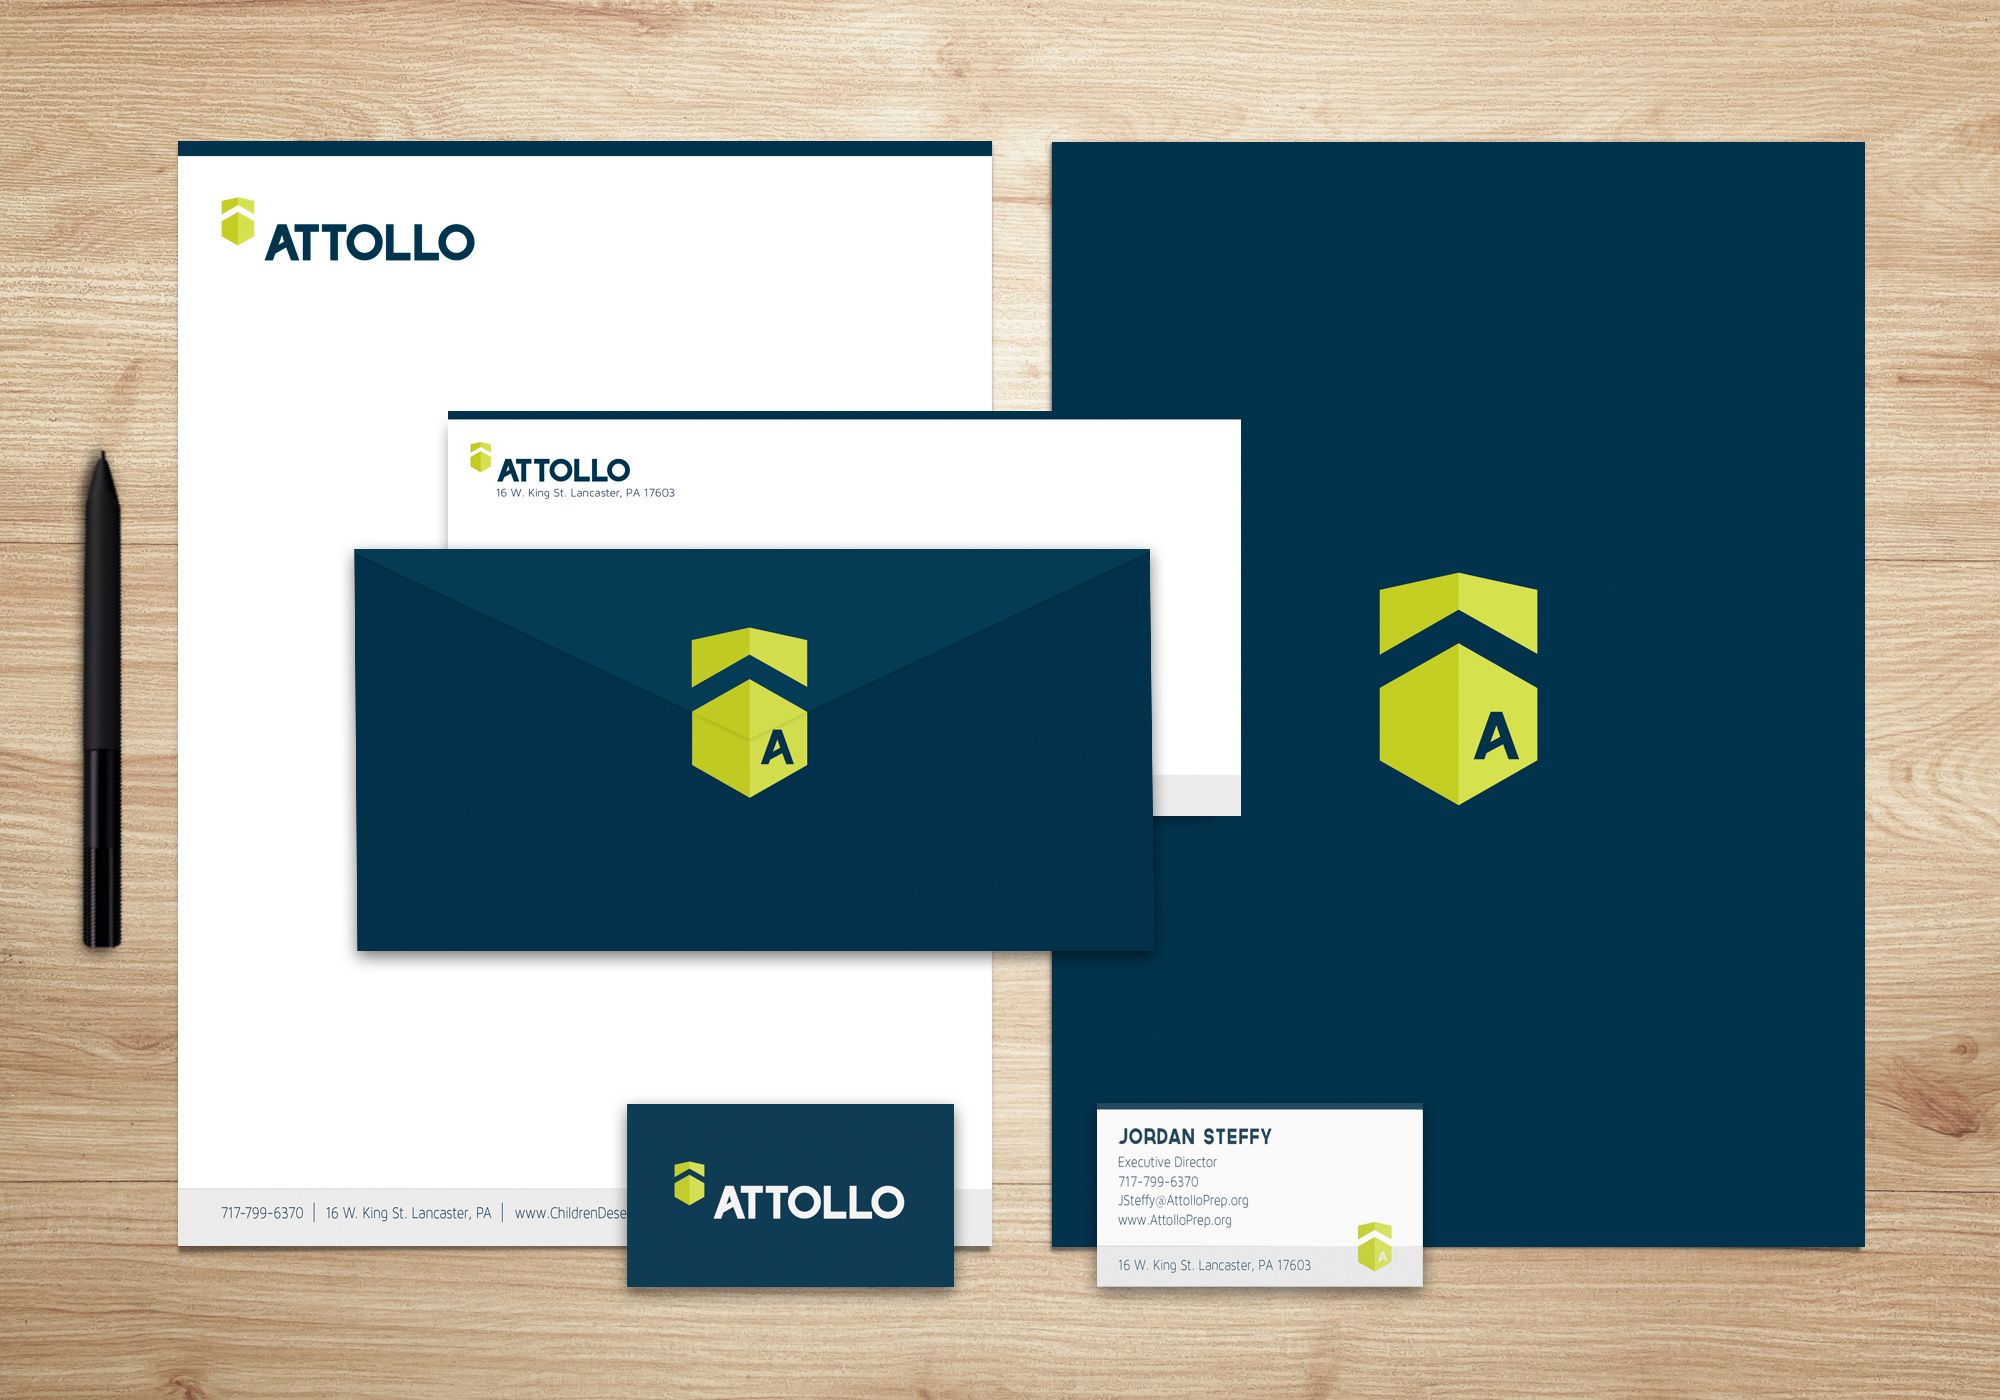 Attollo - Collateral Collection